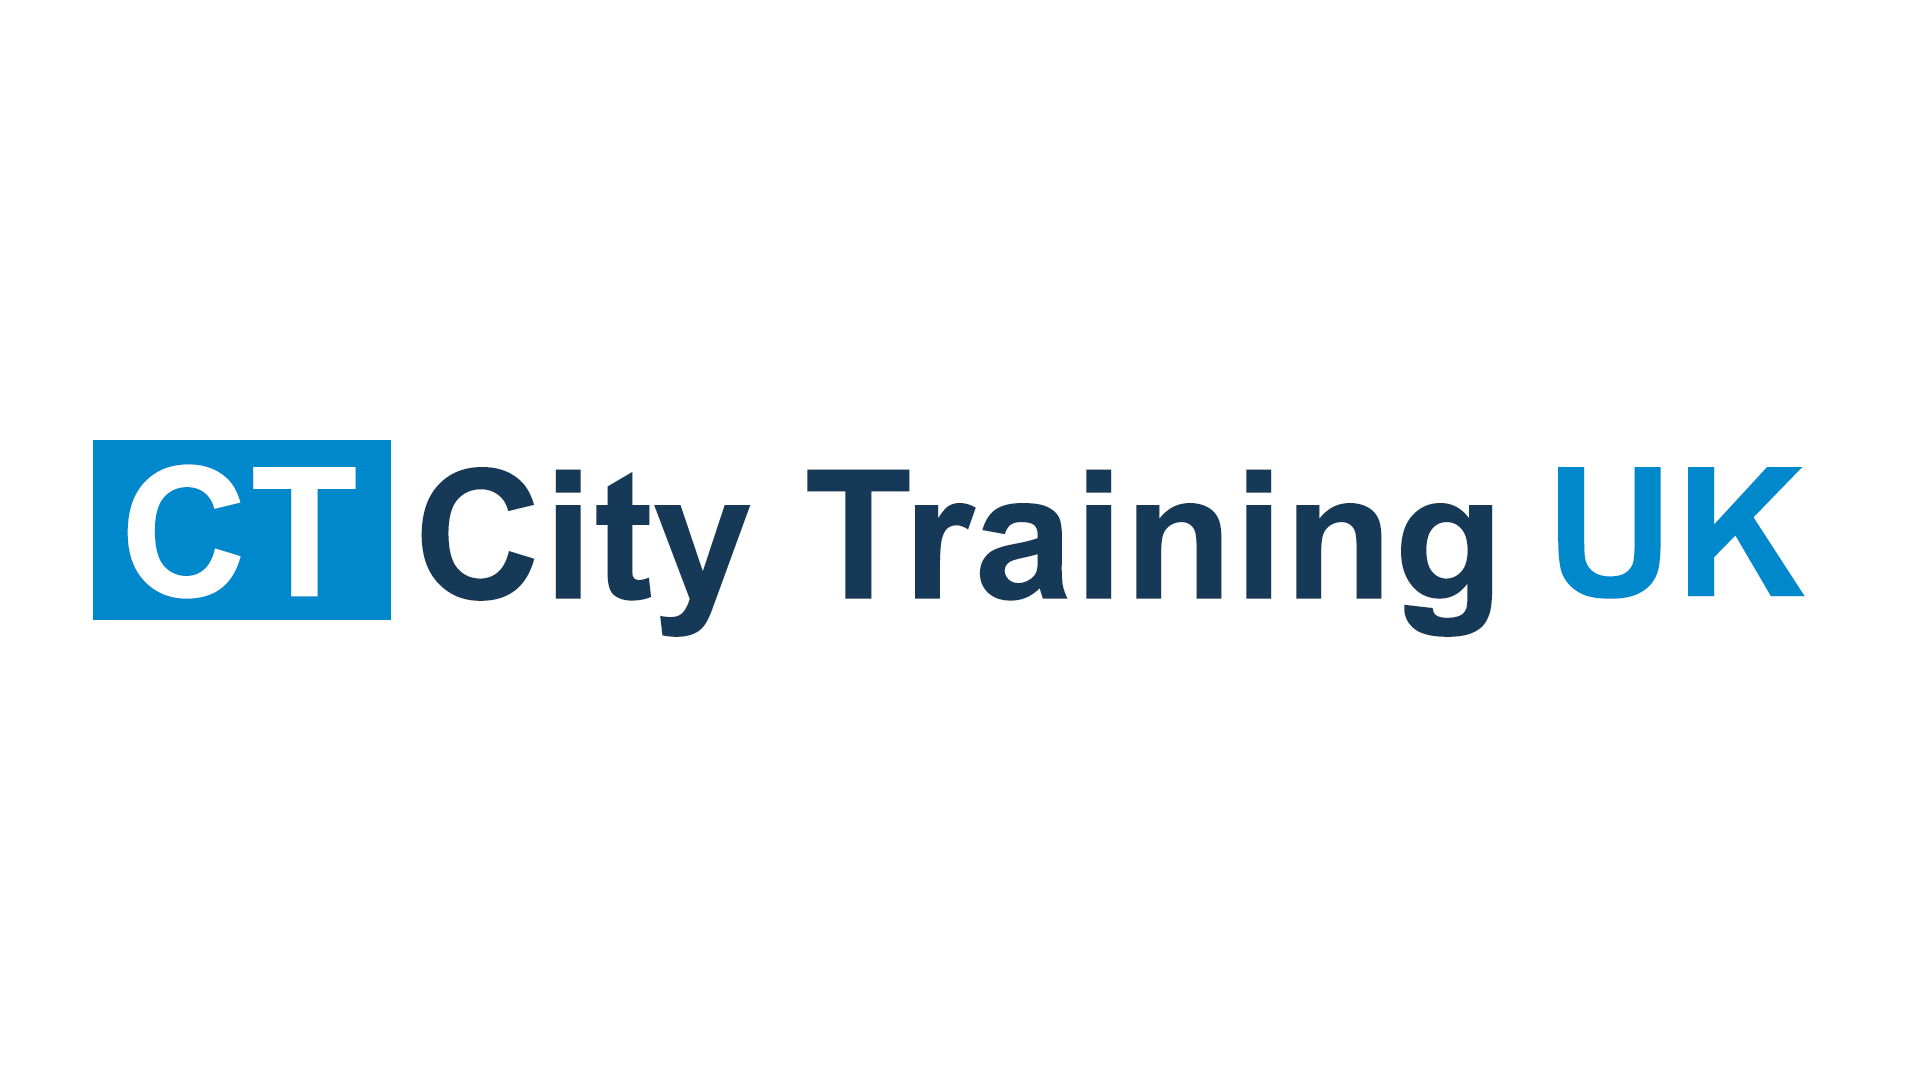 City Training UK